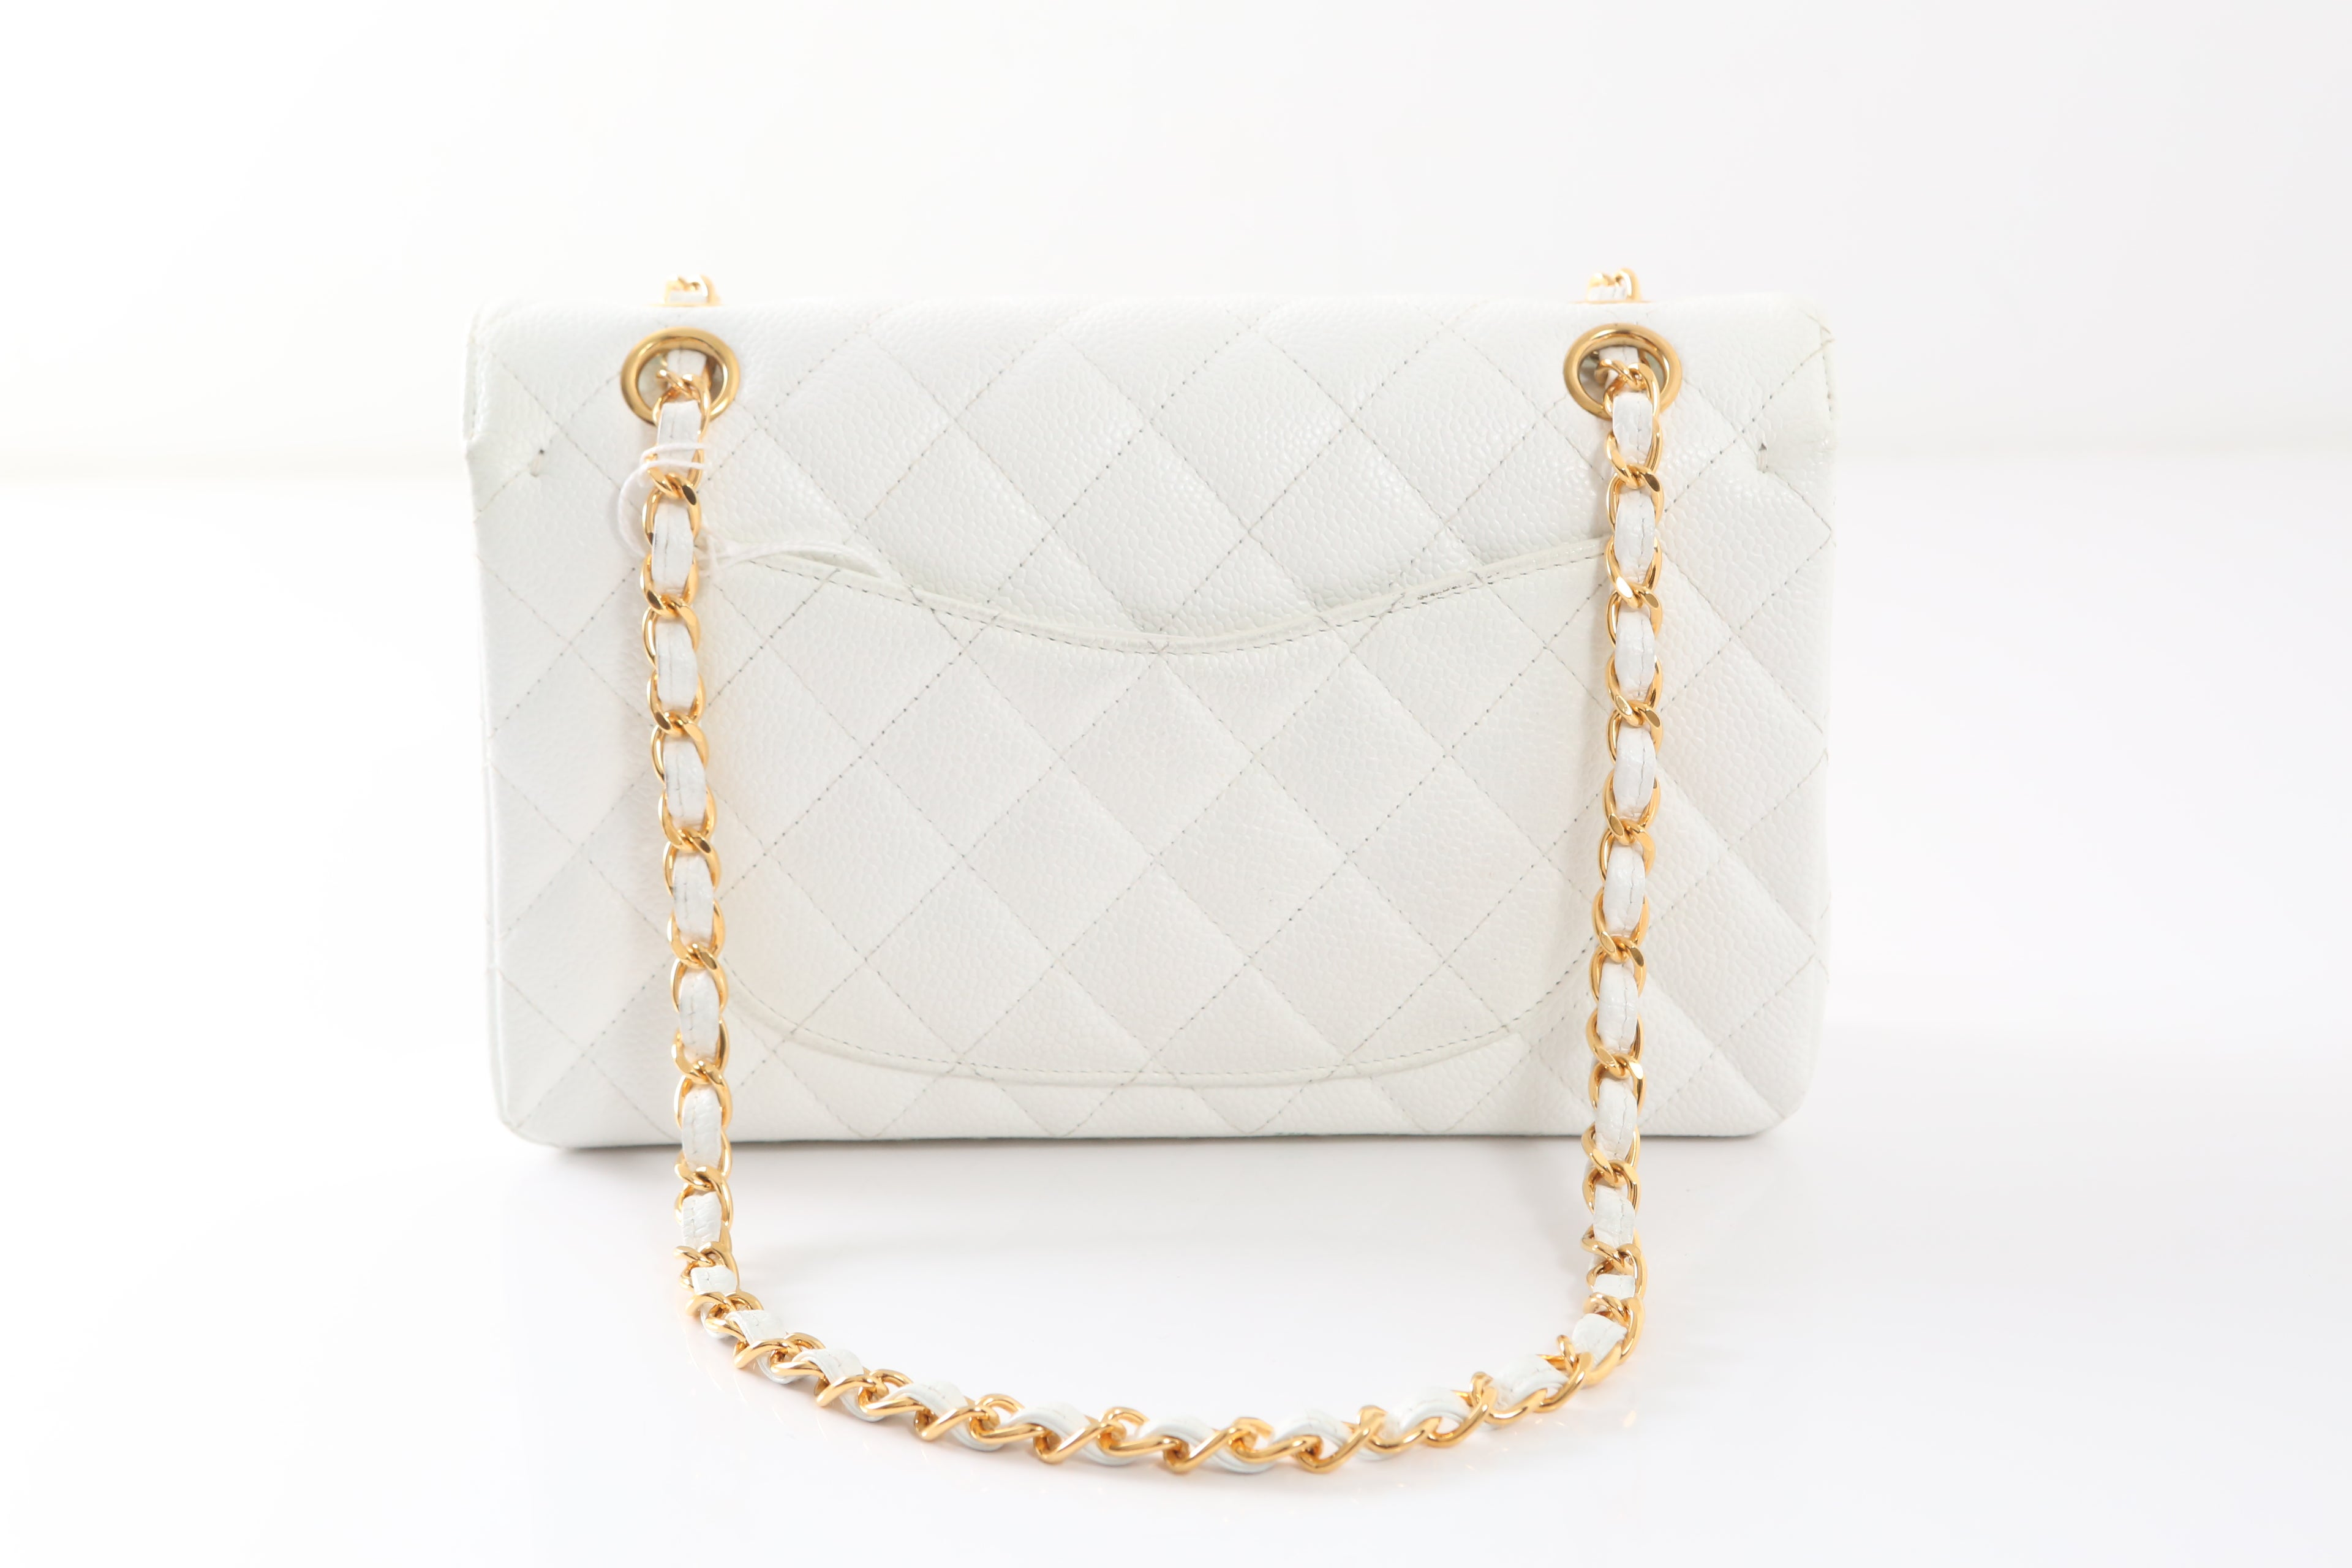 1997-1999 Chanel White Gold Small Double Flap Handbag For Sale at 1stdibs aadfeb9580342